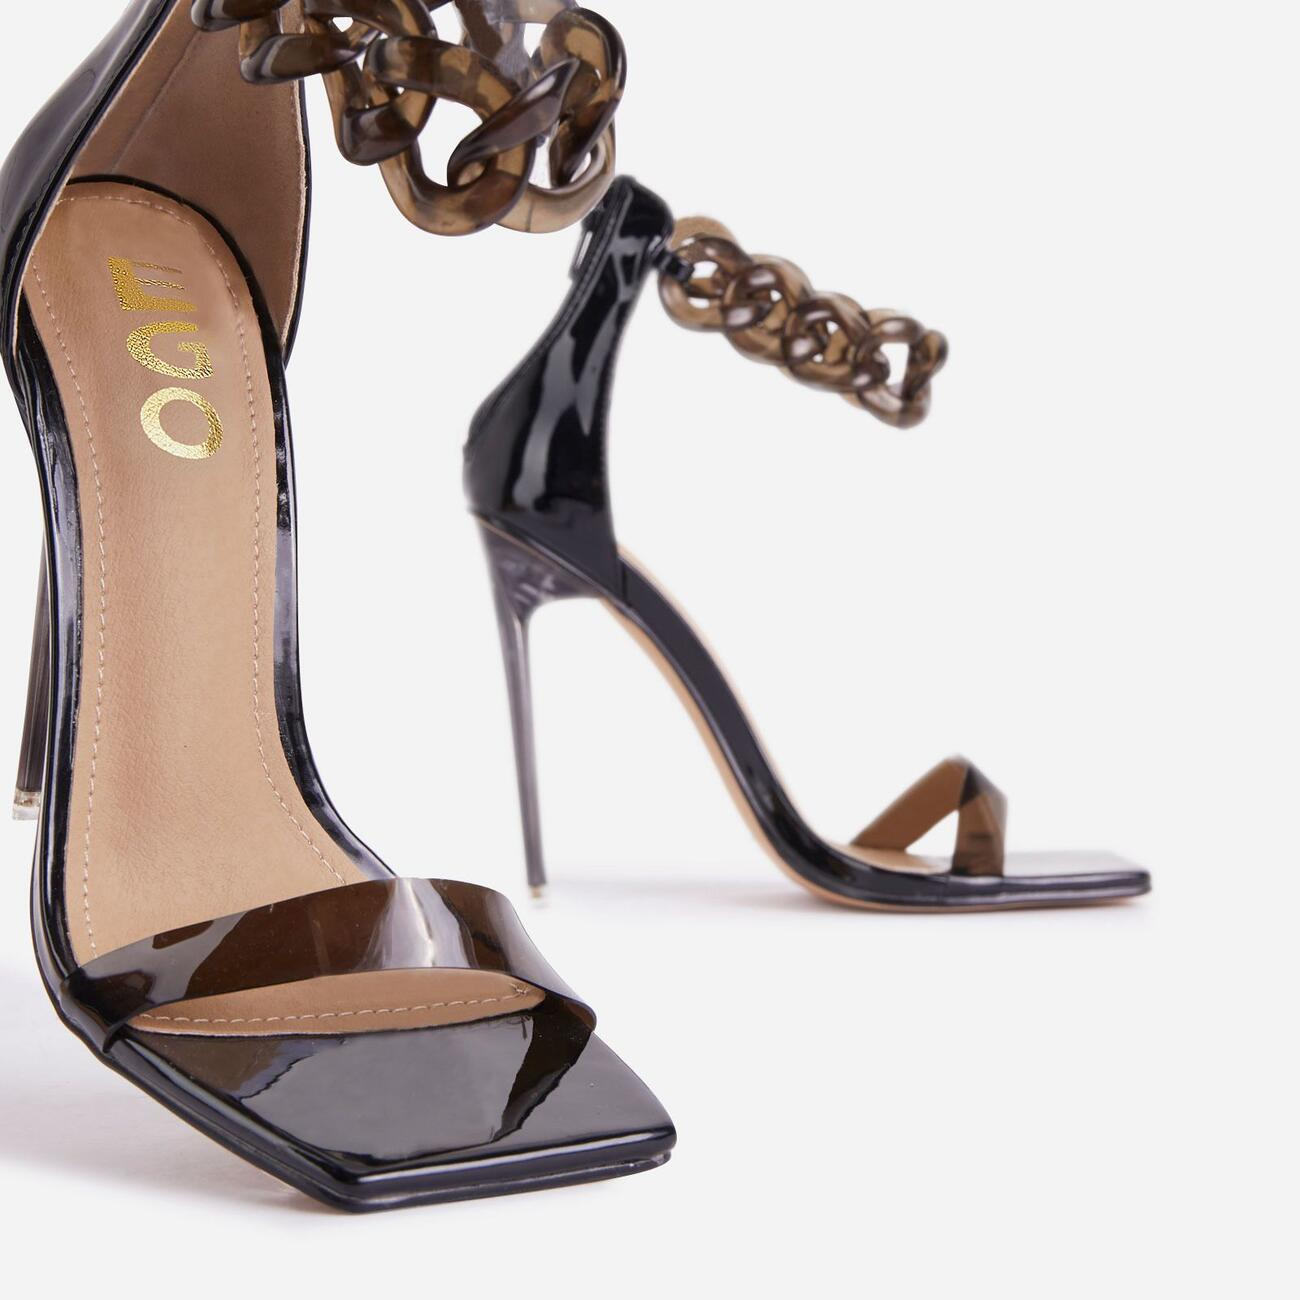 Sangria Chain Detail Square Toe Perspex Heel In Black Patent